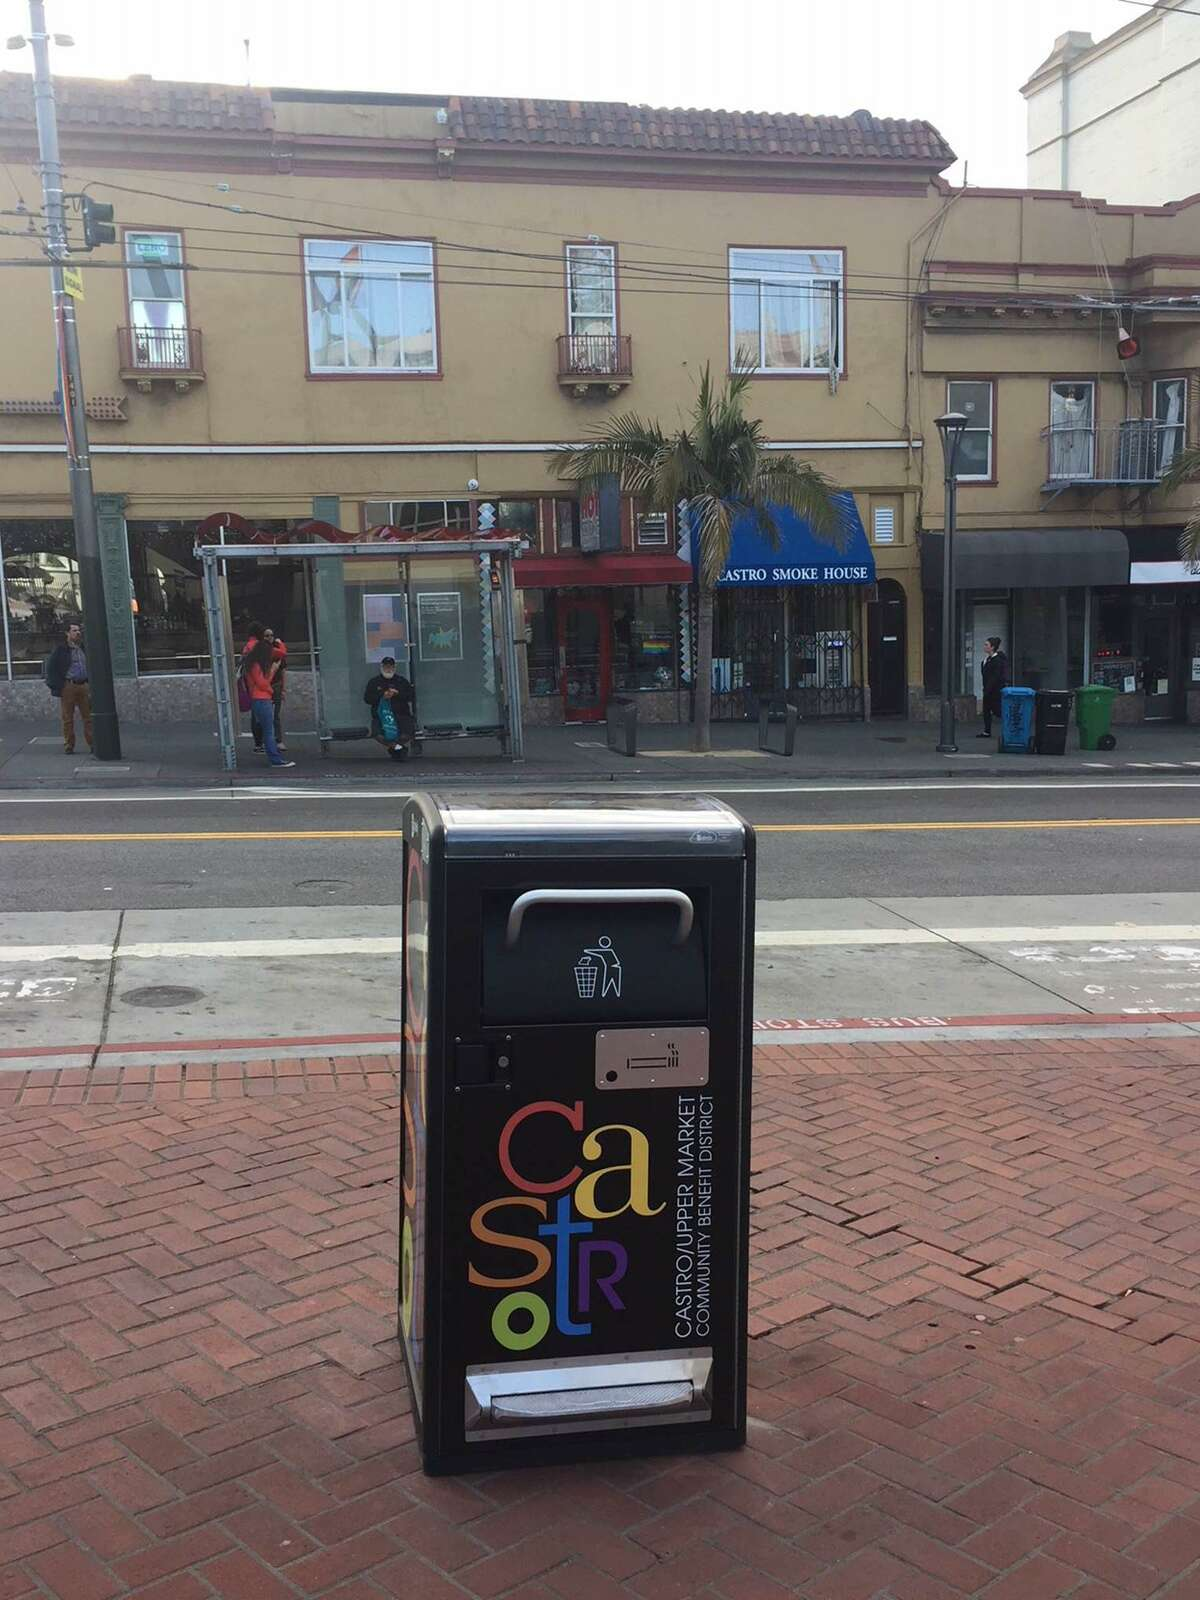 A Bigbelly trash bin near the Castro Theatre in San Francisco on Tuesday May 1, 2018.